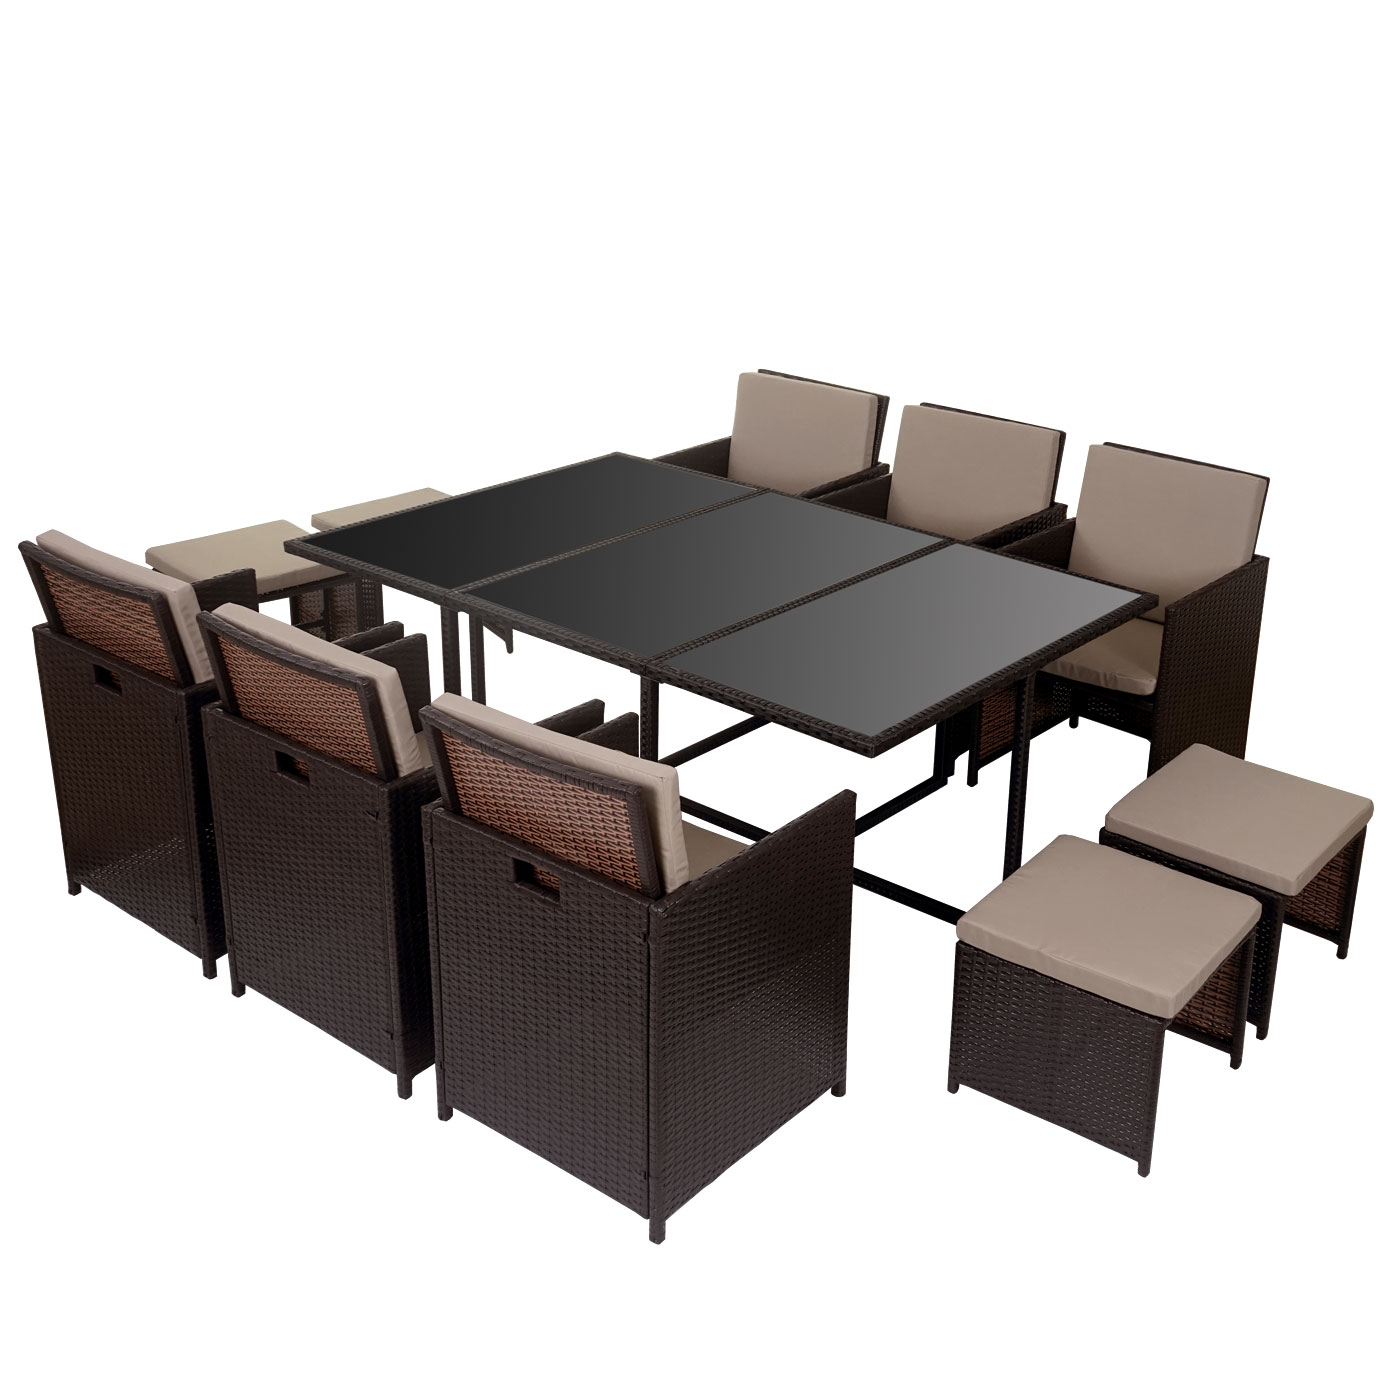 poly rattan garten garnitur kreta lounge set sitzgruppe 10 sitzpl tze braun kissen beige. Black Bedroom Furniture Sets. Home Design Ideas